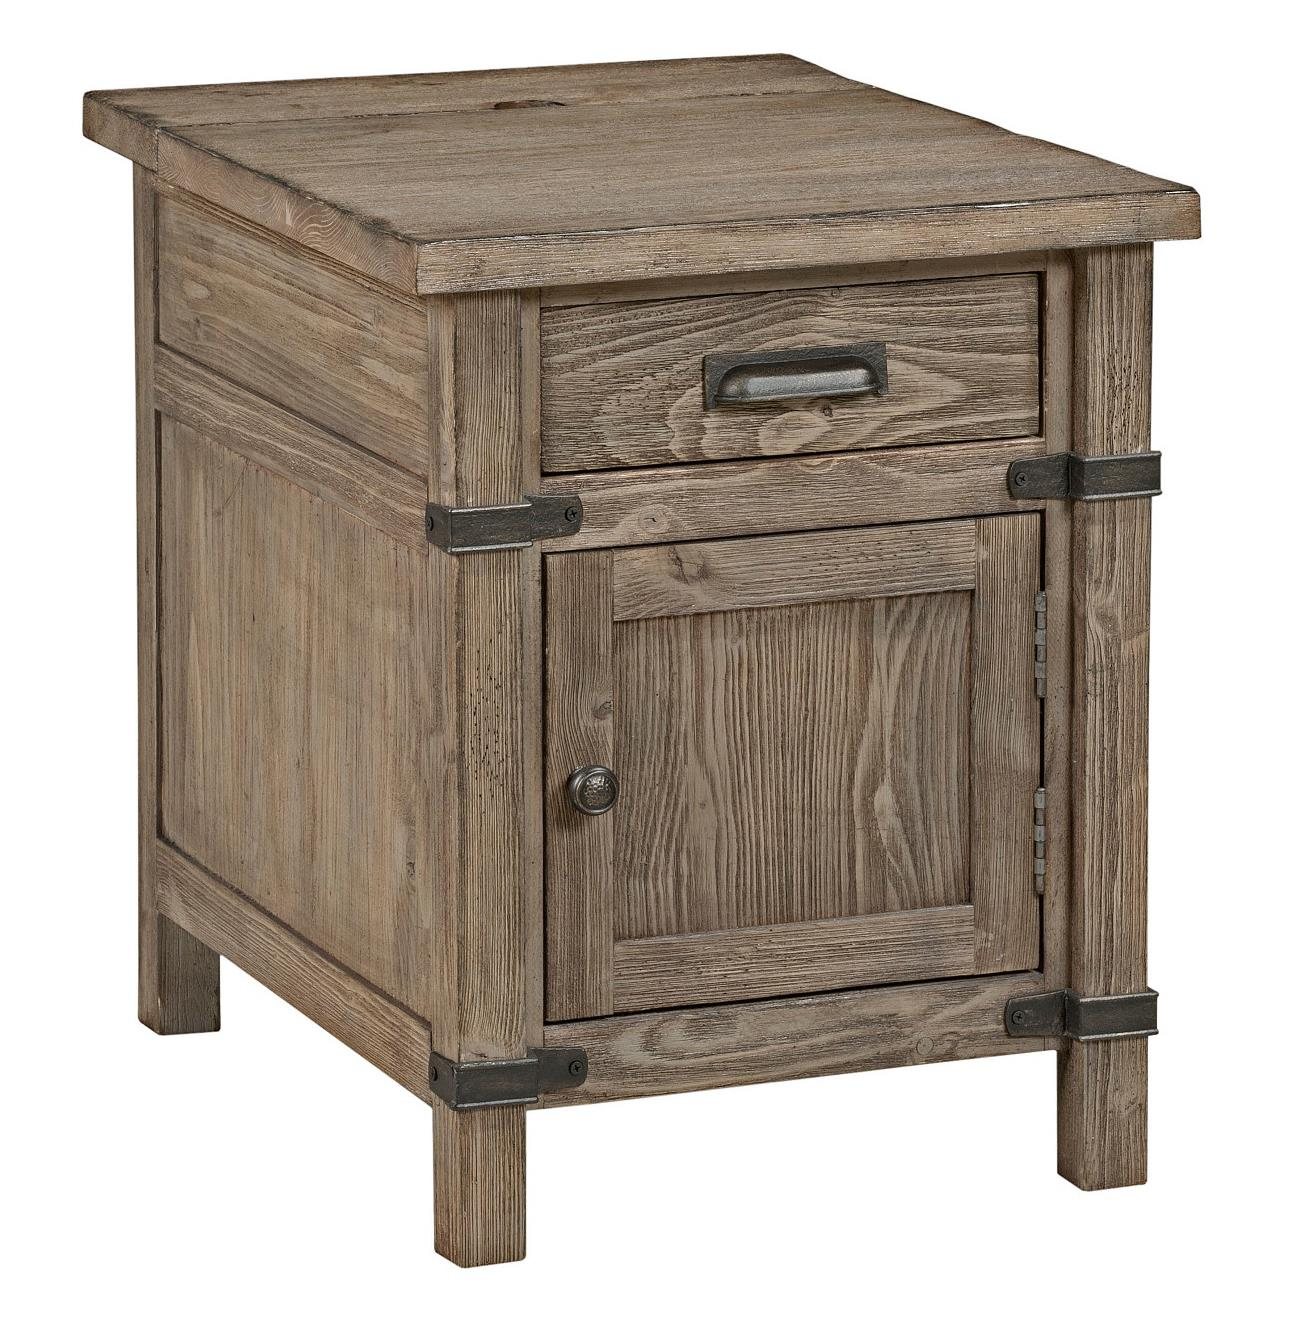 Rustic Weathered Gray Chairside Table With Power Outlet